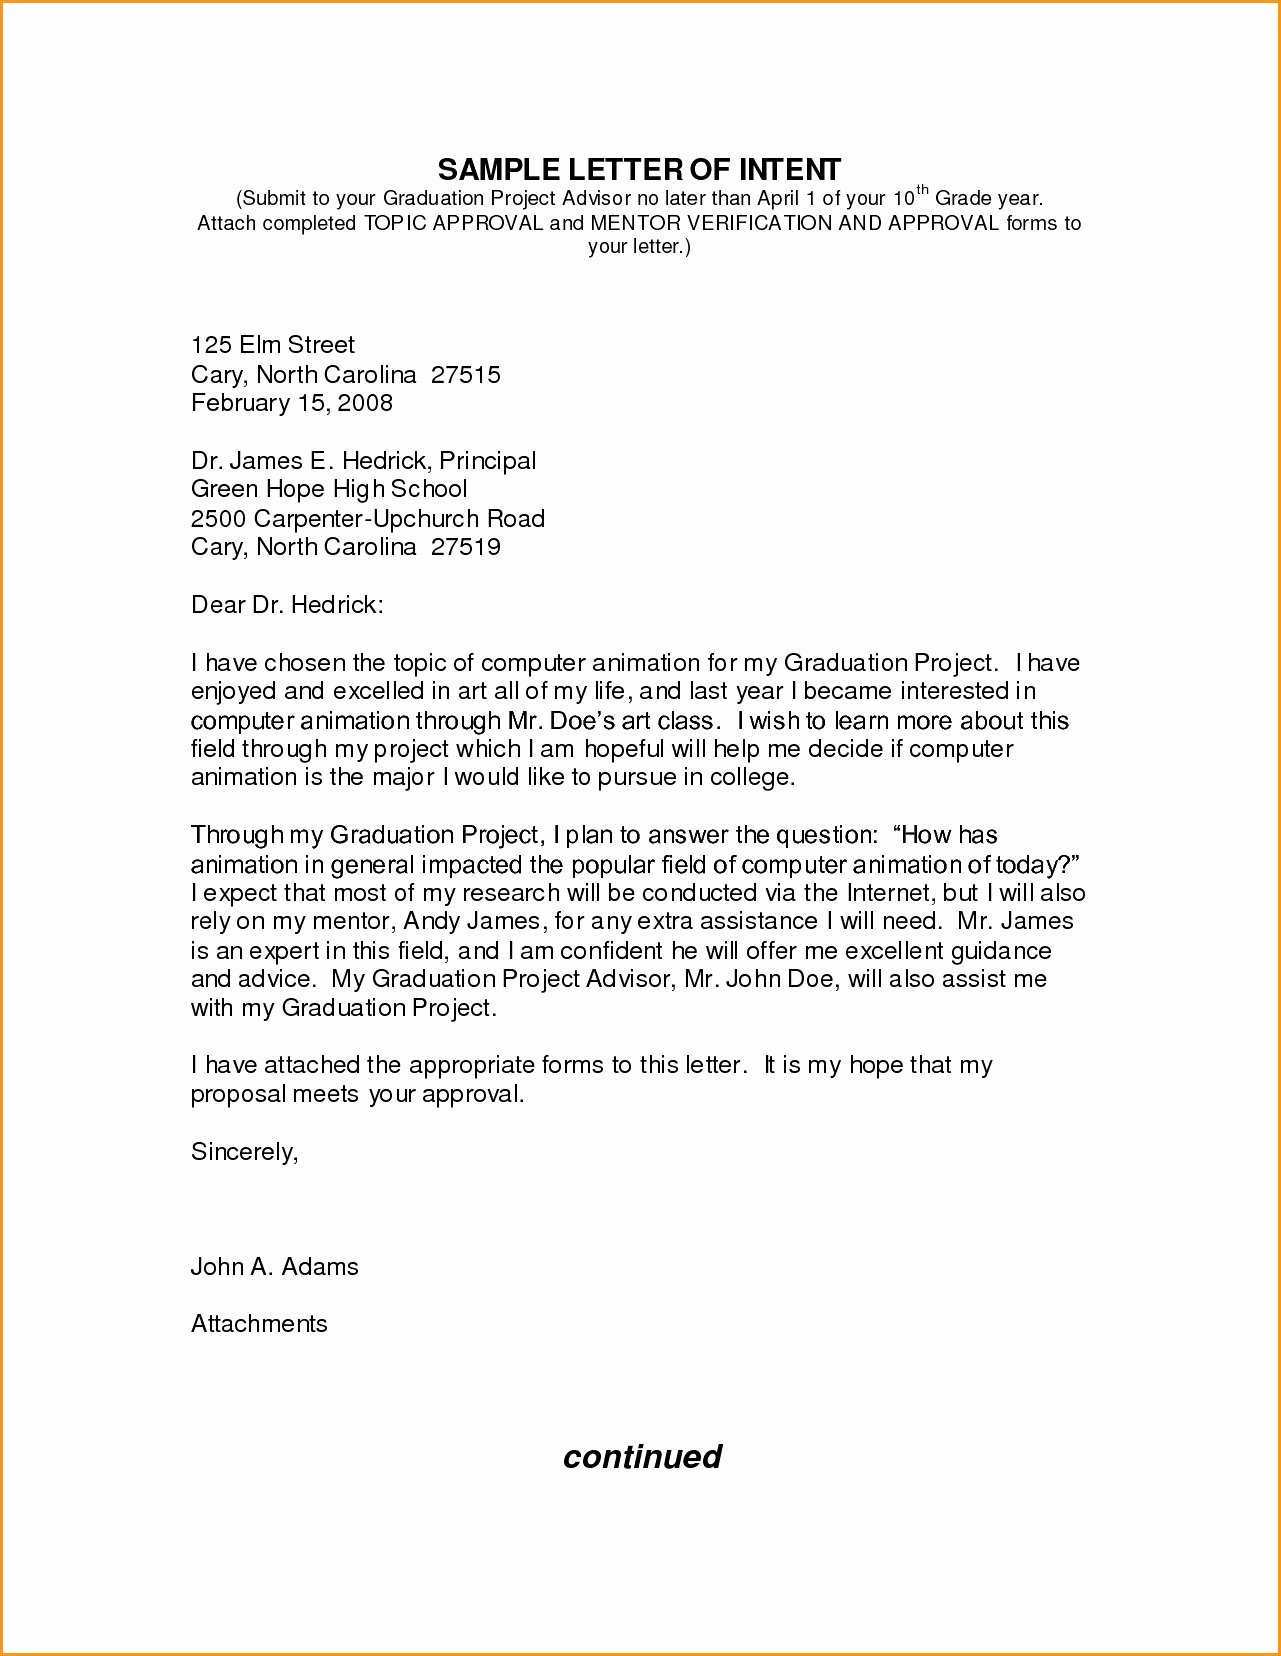 Graduate Letter Of Intent Sample Unique ️ Sample Letter Of Intent for Graduate Program How to